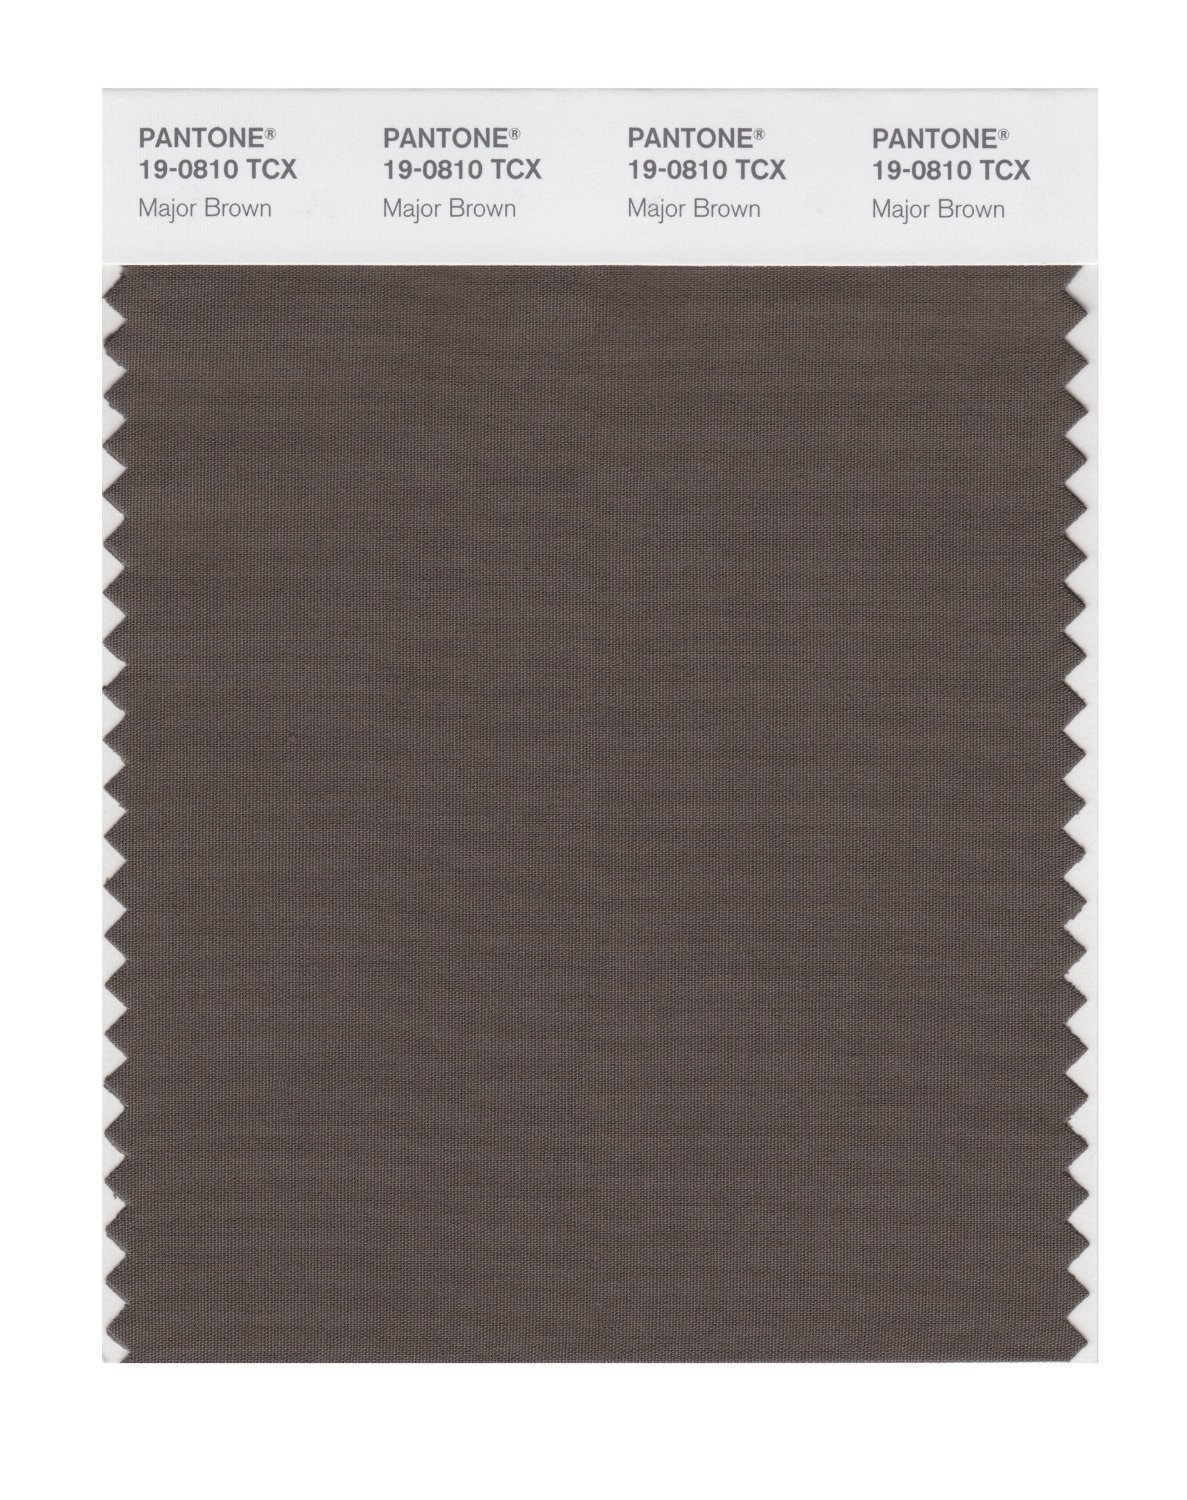 Pantone 19-0810 TCX Swatch Card Major Brown